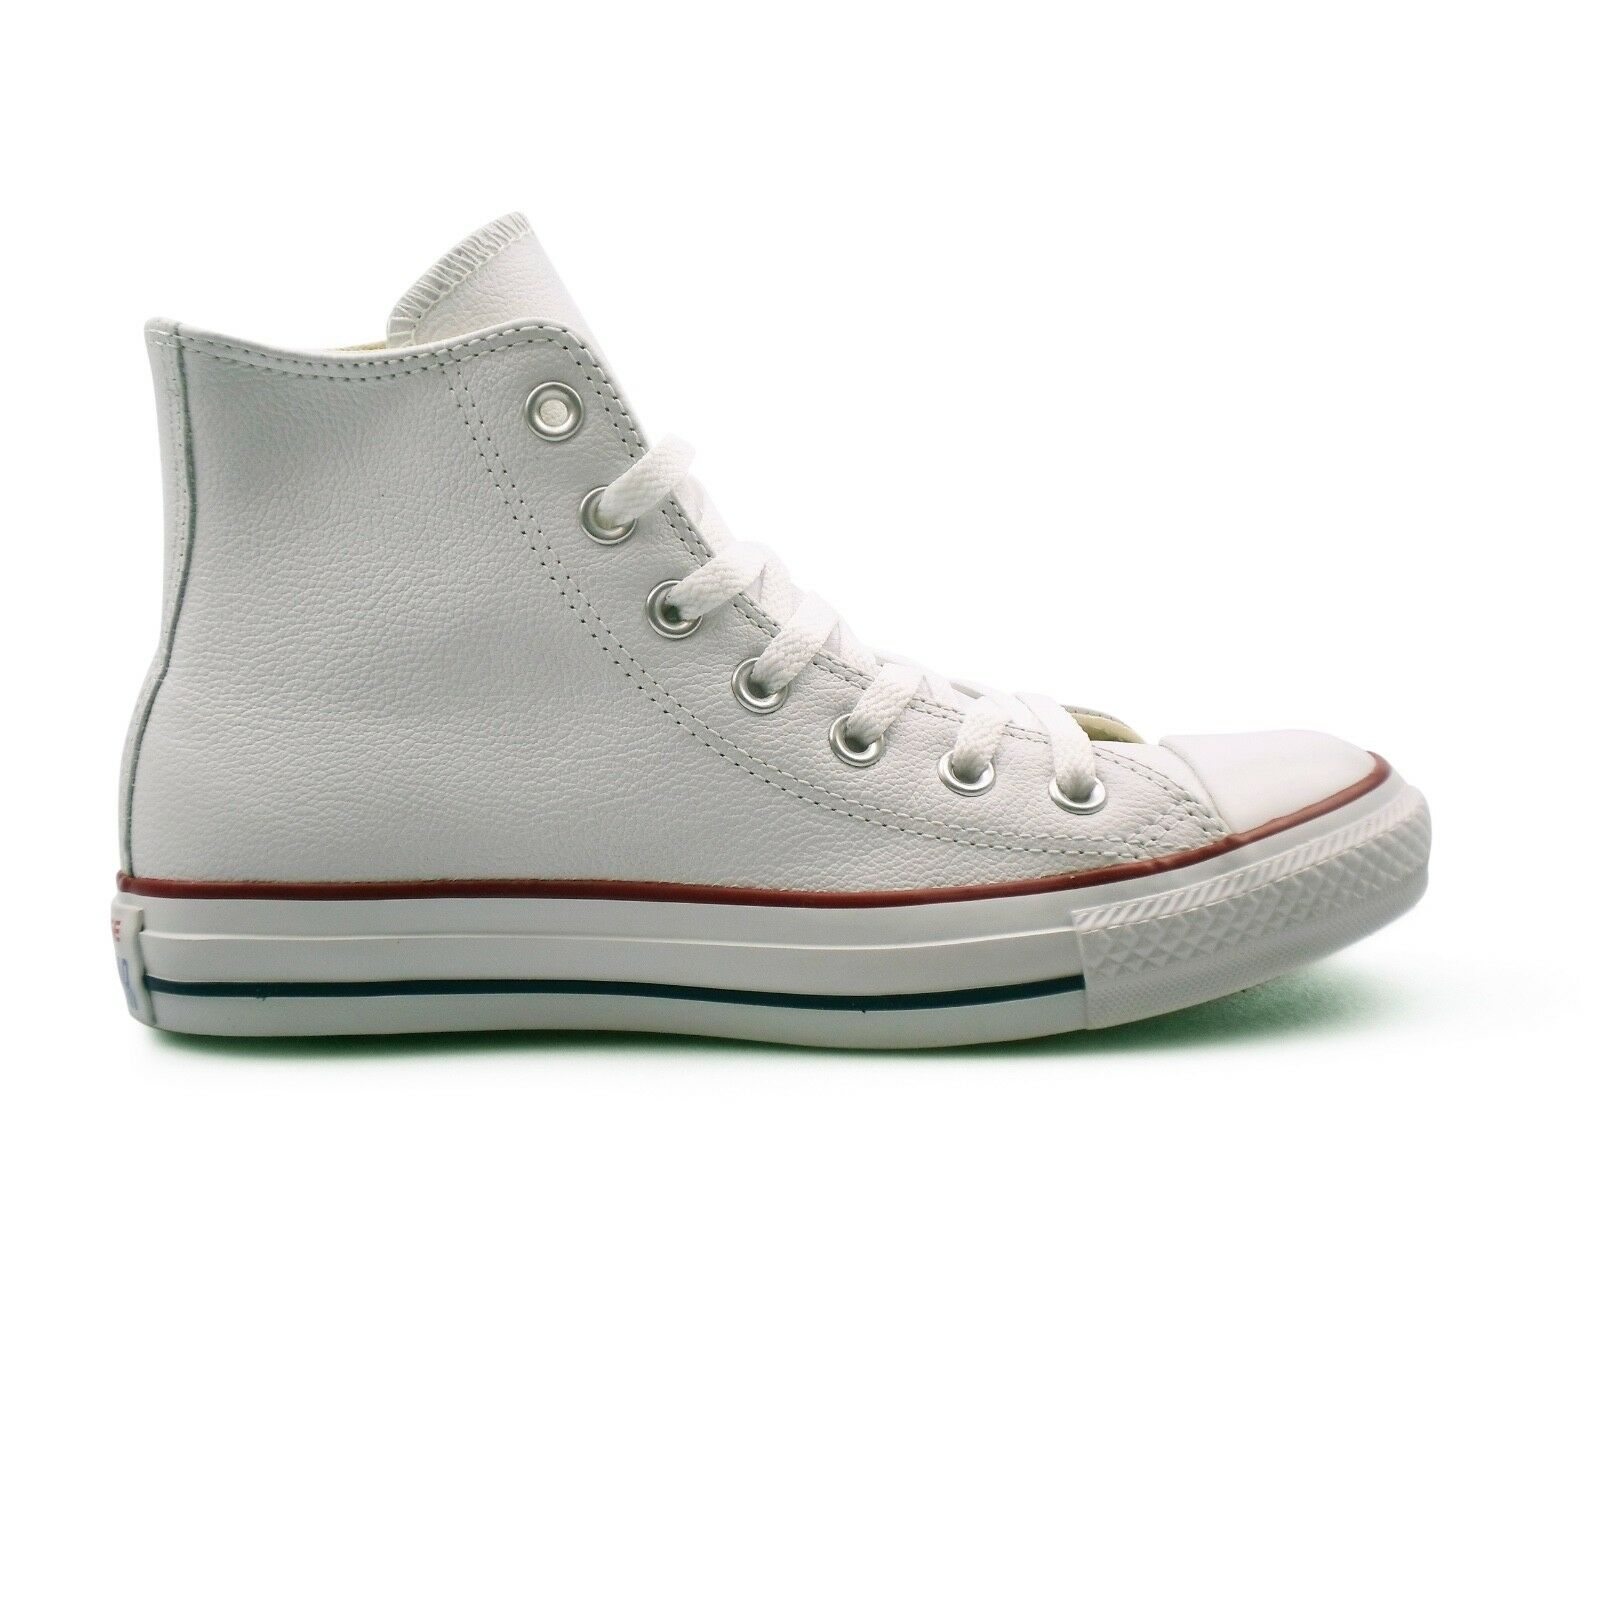 Converse Chuck Taylor All Star Leather High Top White Unisex Trainers. New